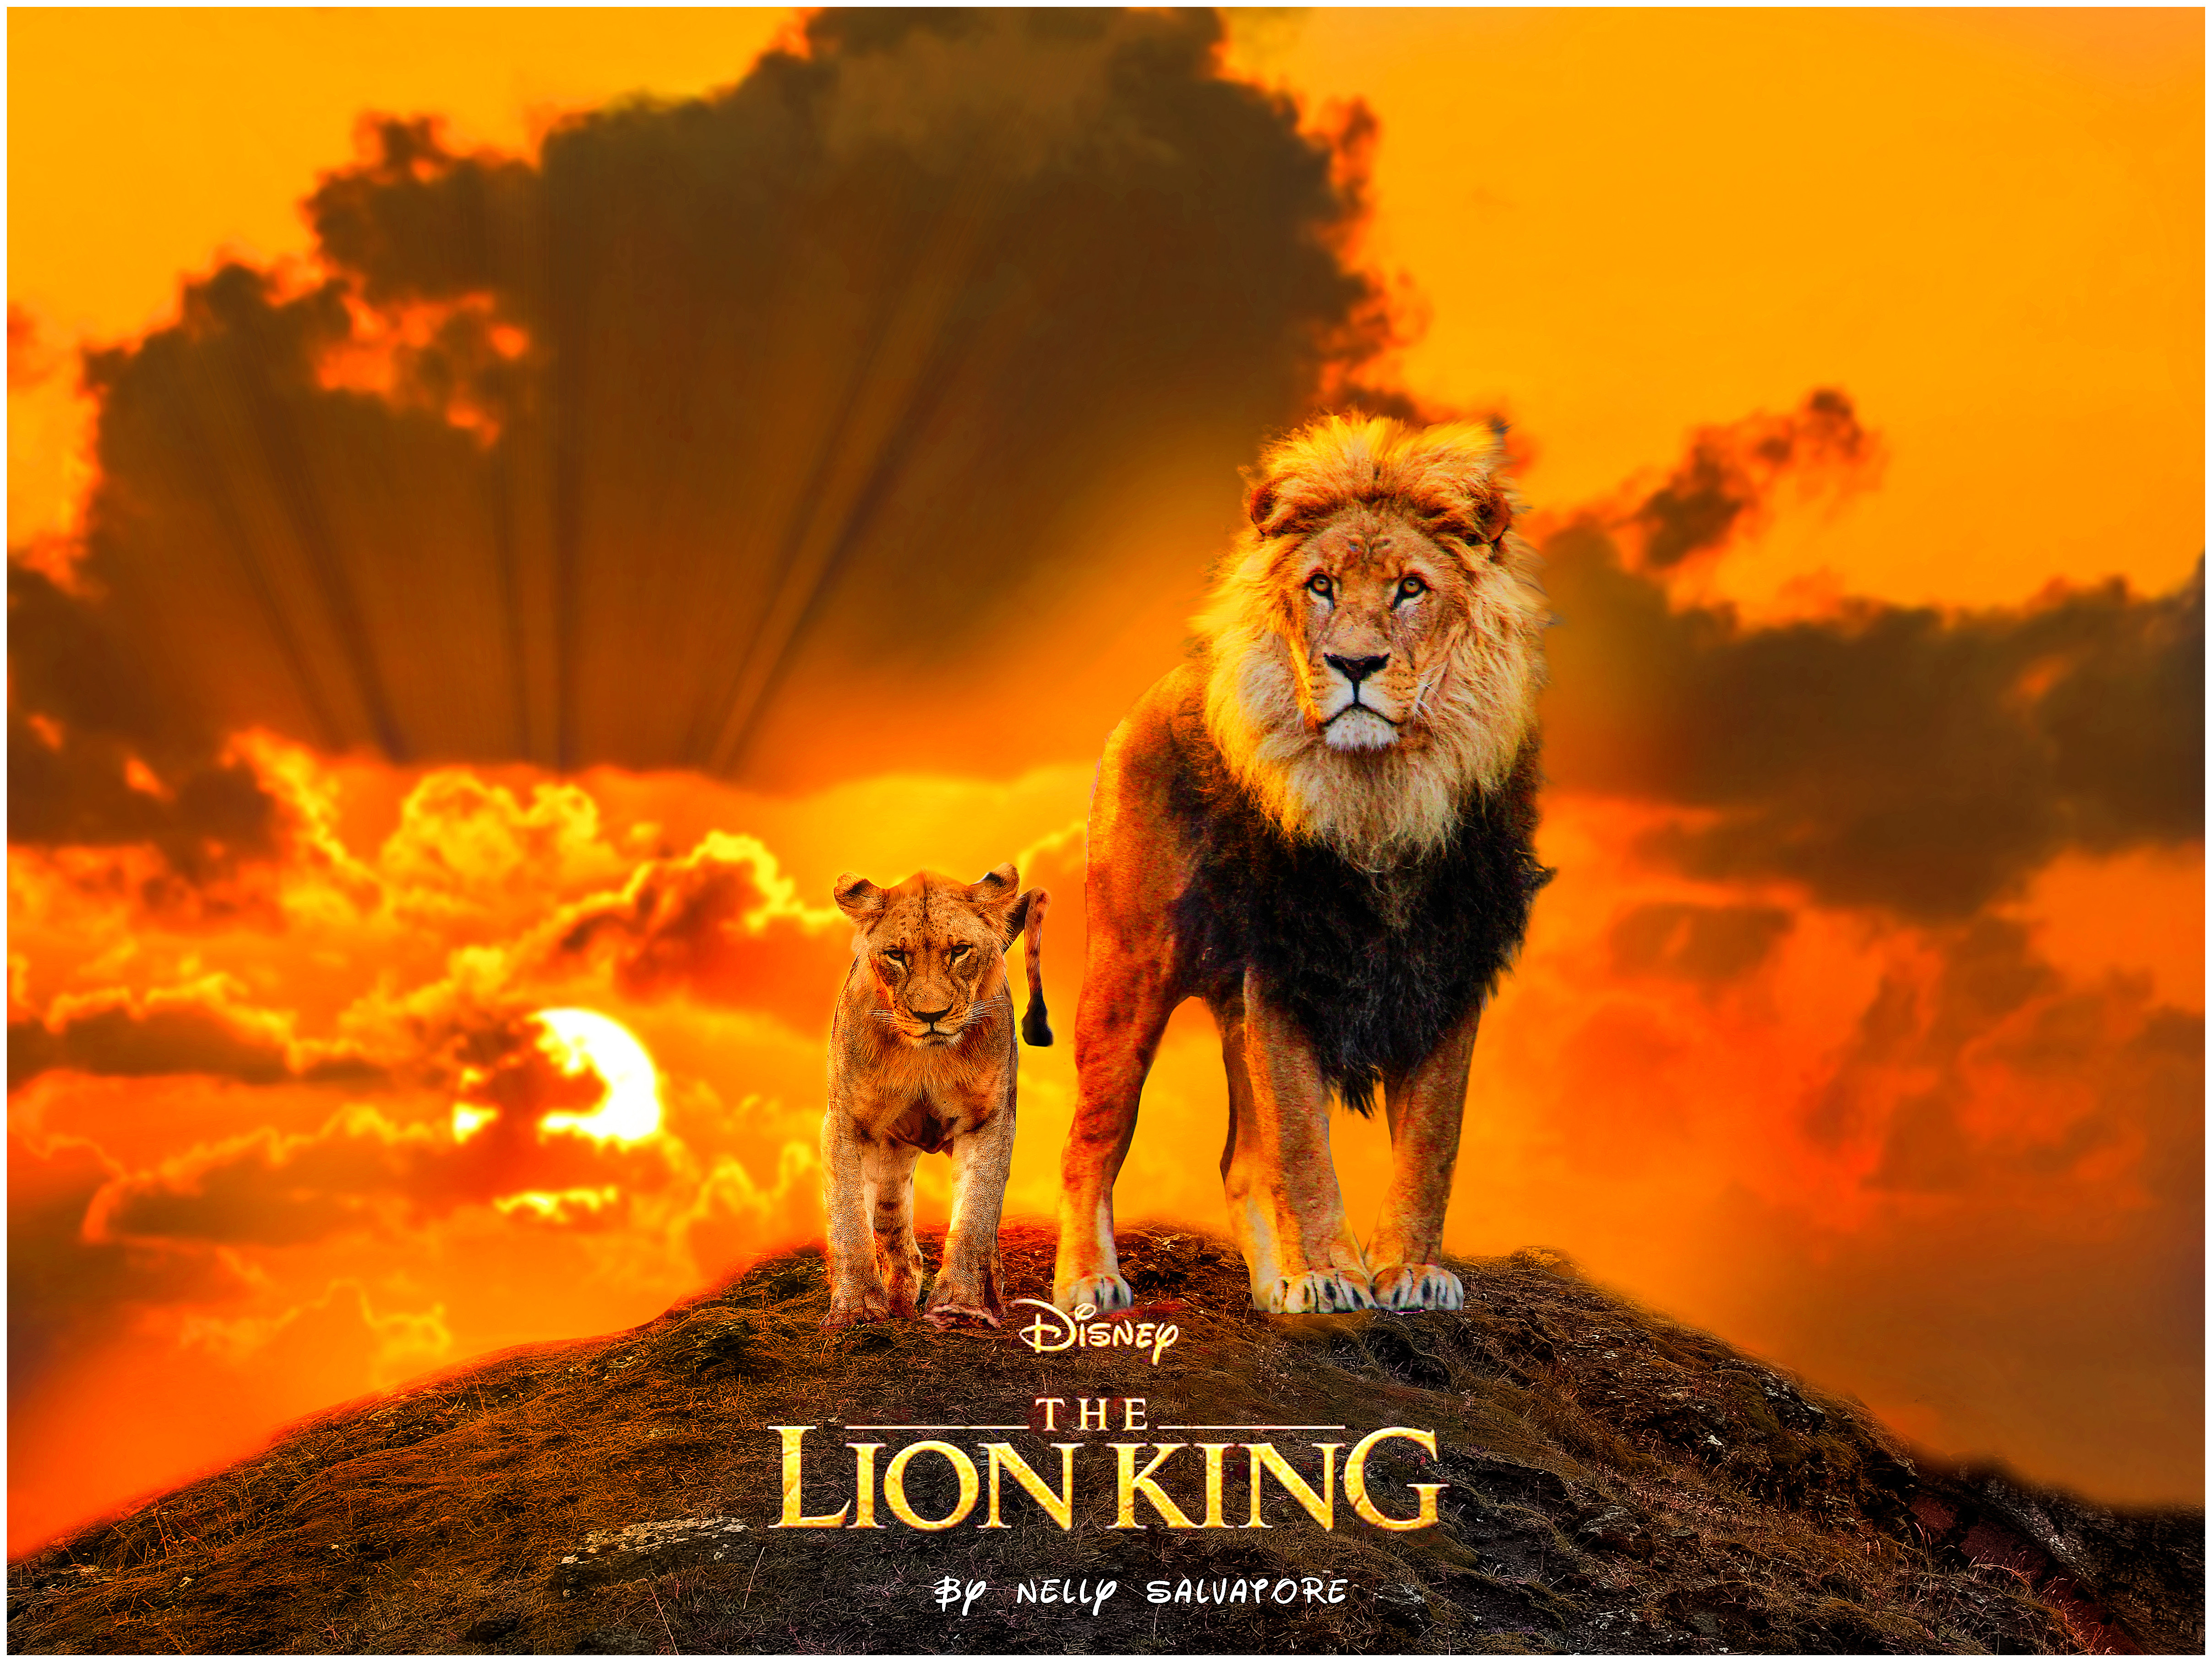 Lion King Movie 2019 Poster